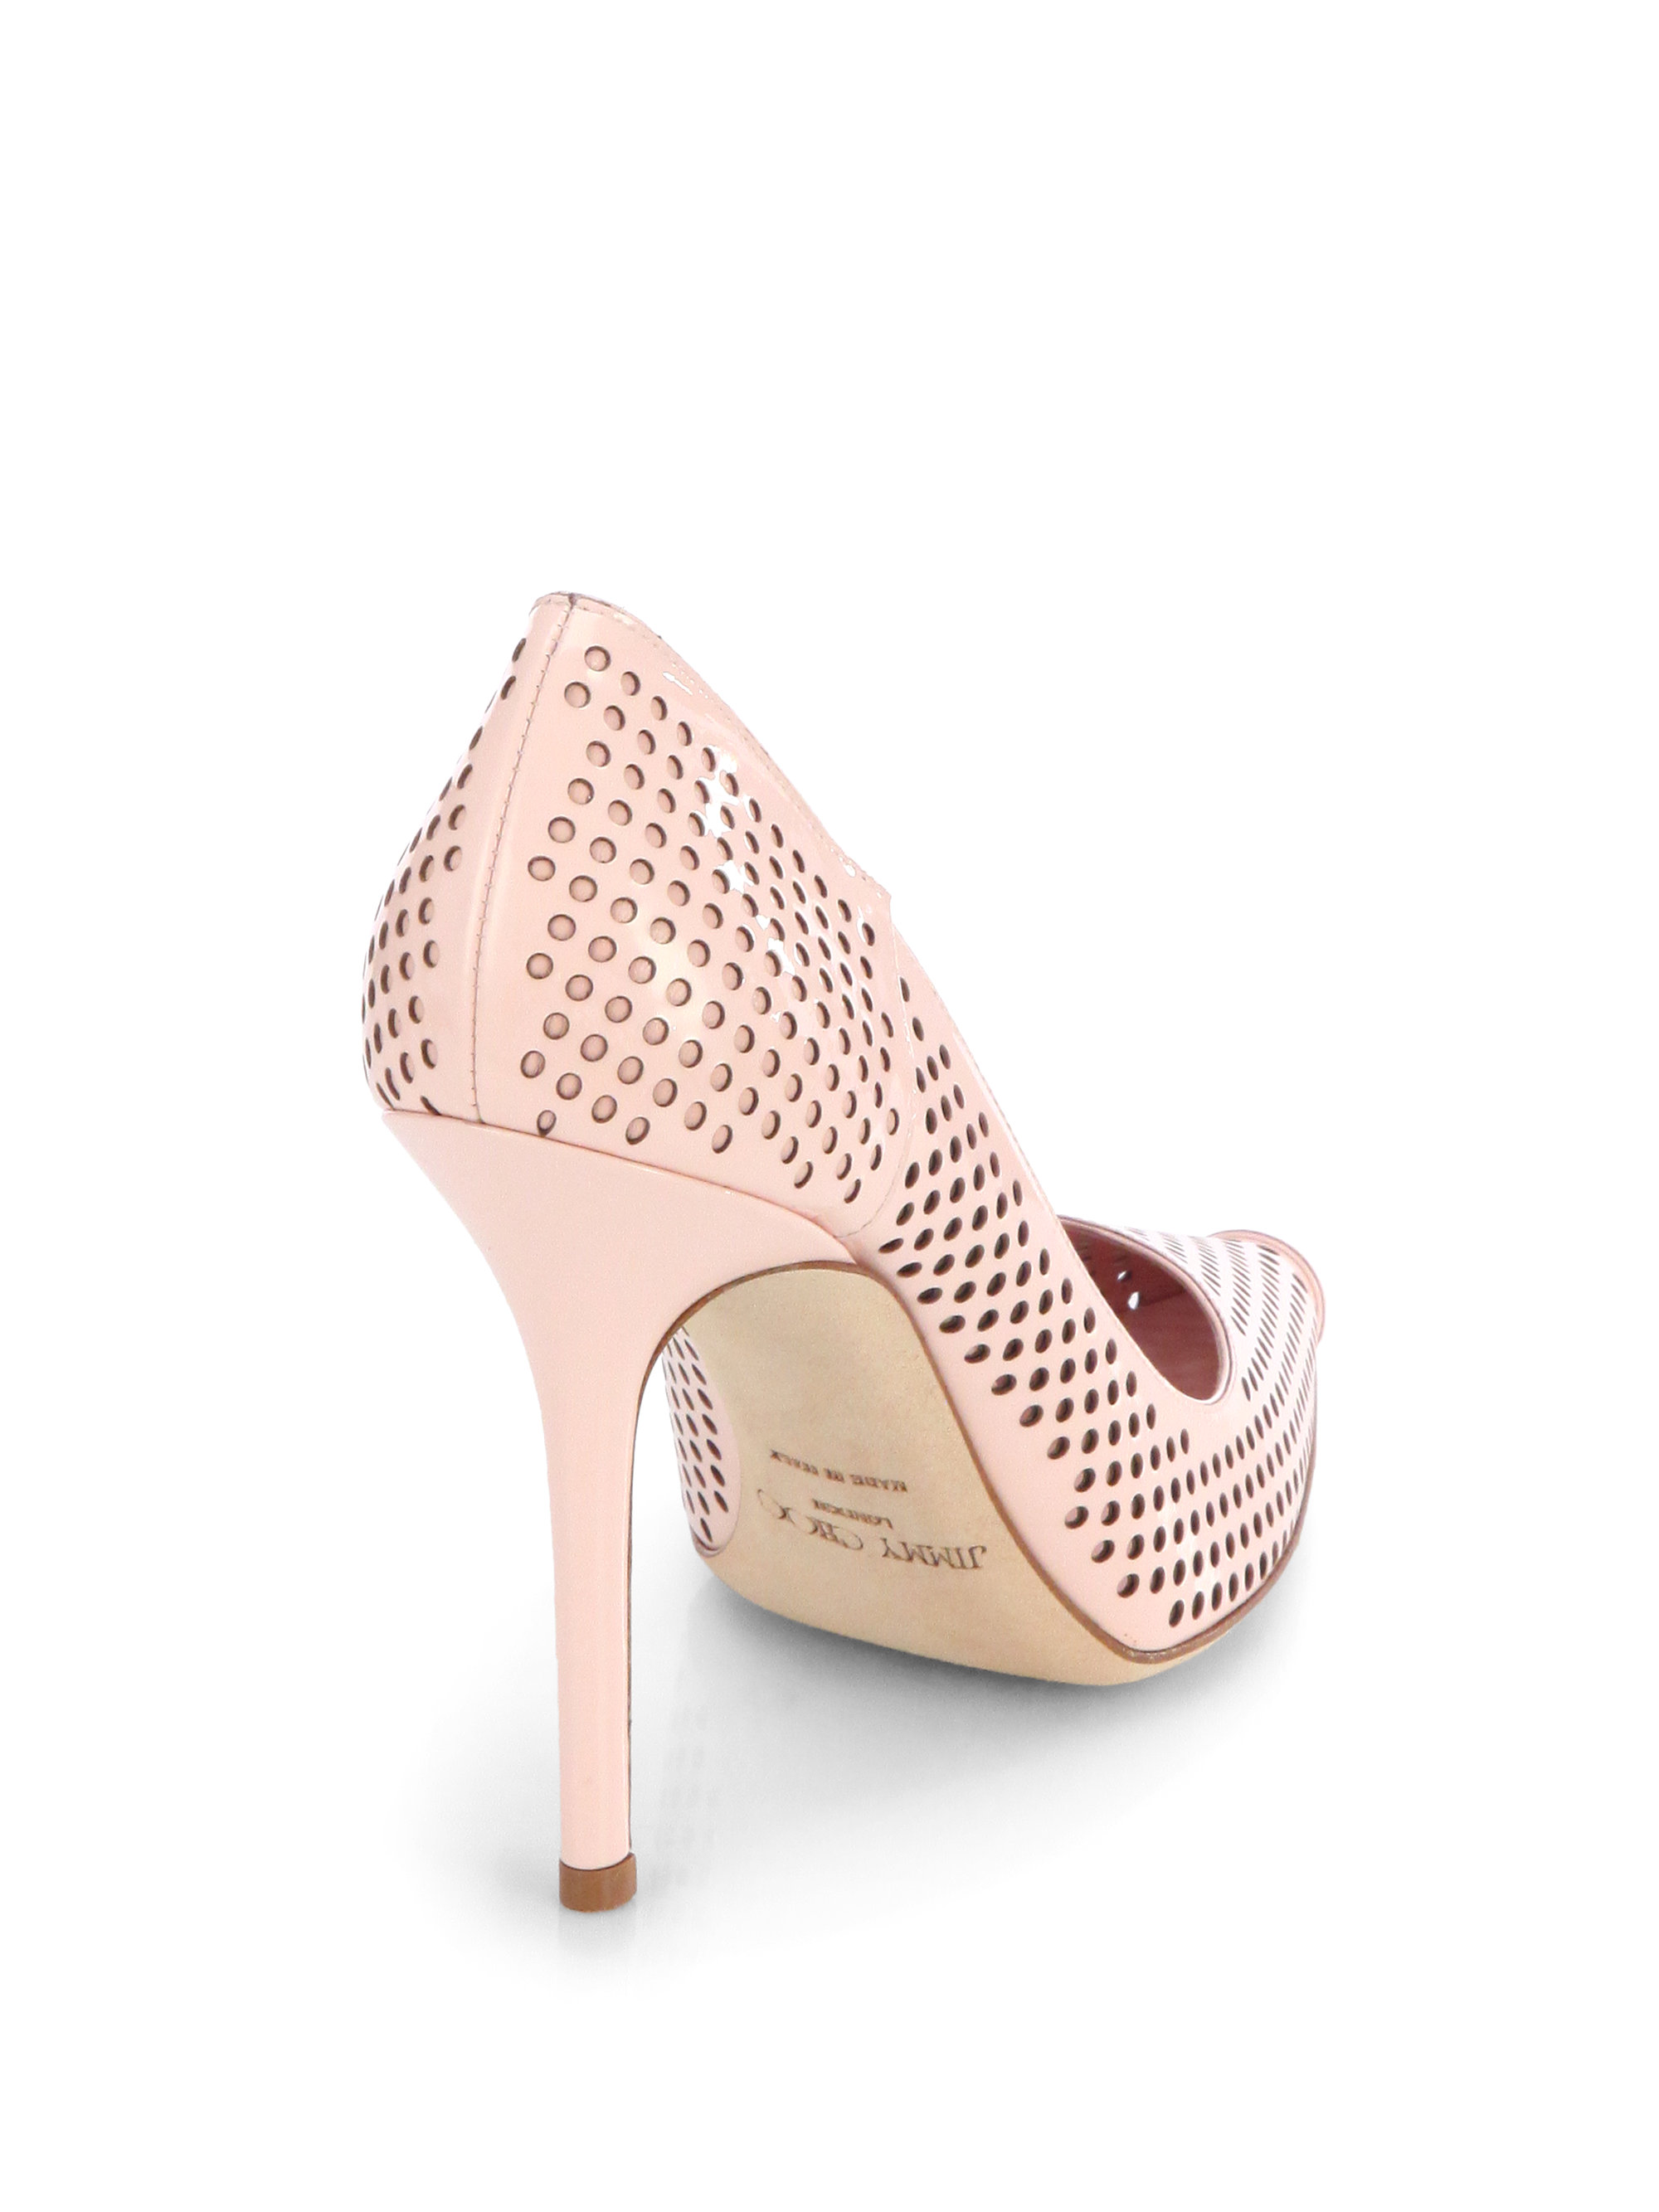 Jimmy Choo Perforated Patent Leather Pumps discount latest collections brand new unisex finishline free shipping finishline uQnxuE